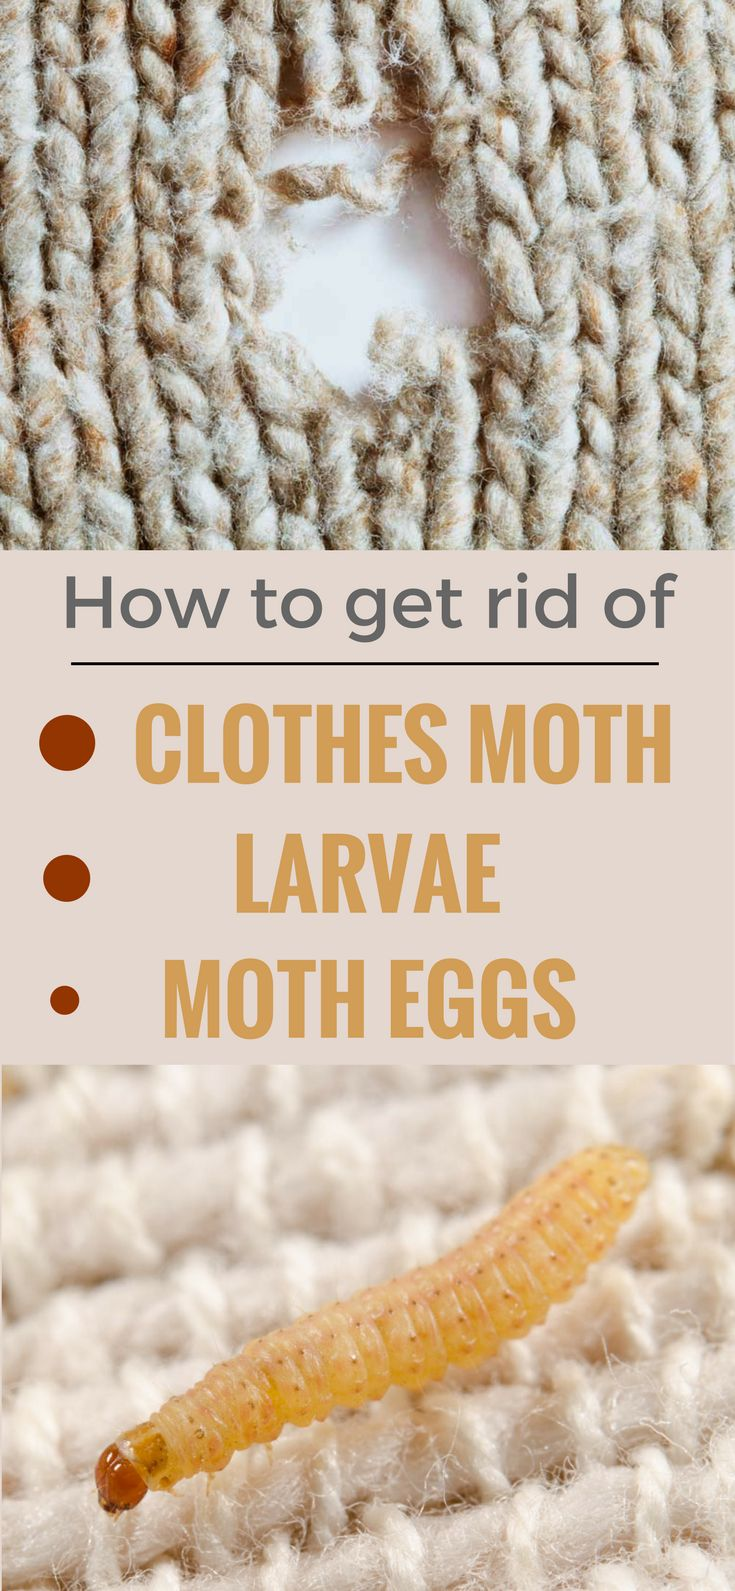 Best methods to get rid of clothes moth, larvae and moth eggs.